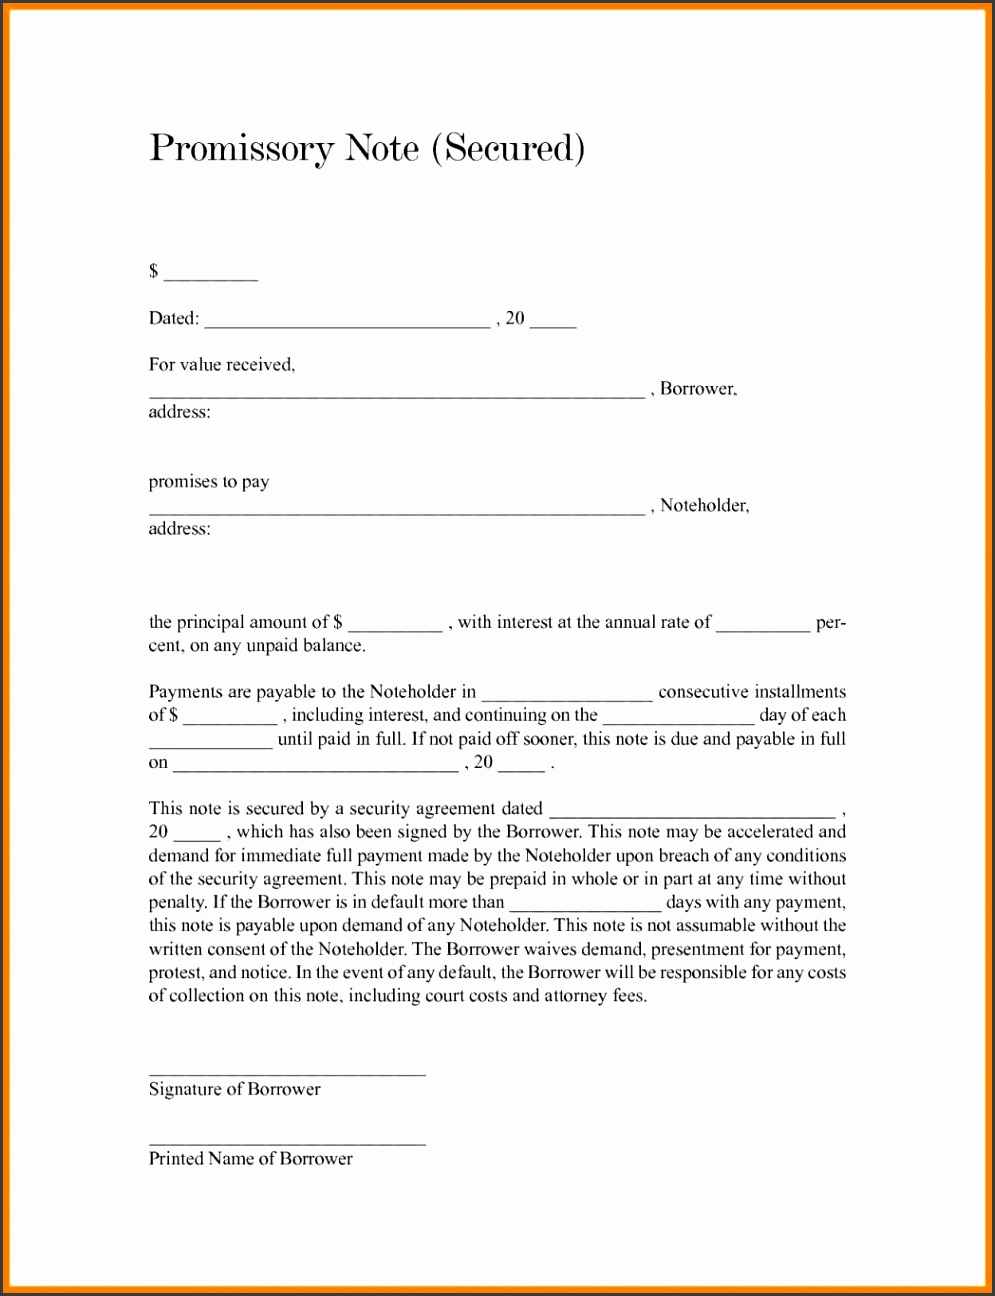 unsecured promissory note template